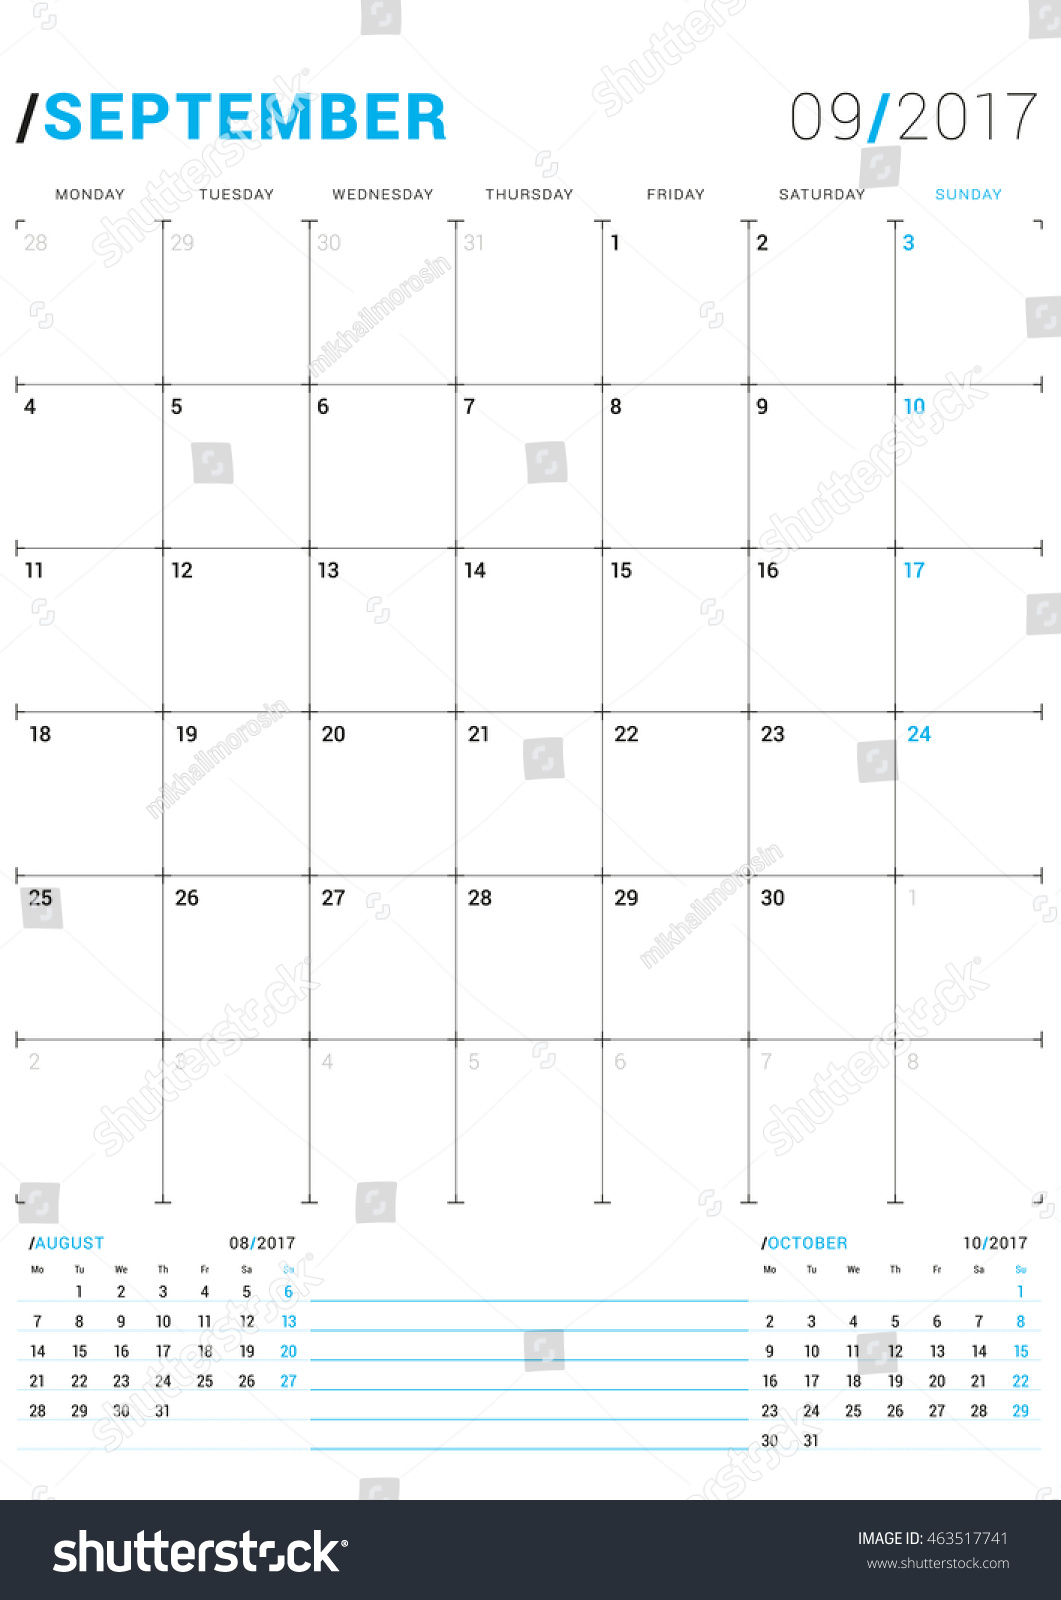 monthly calender planner